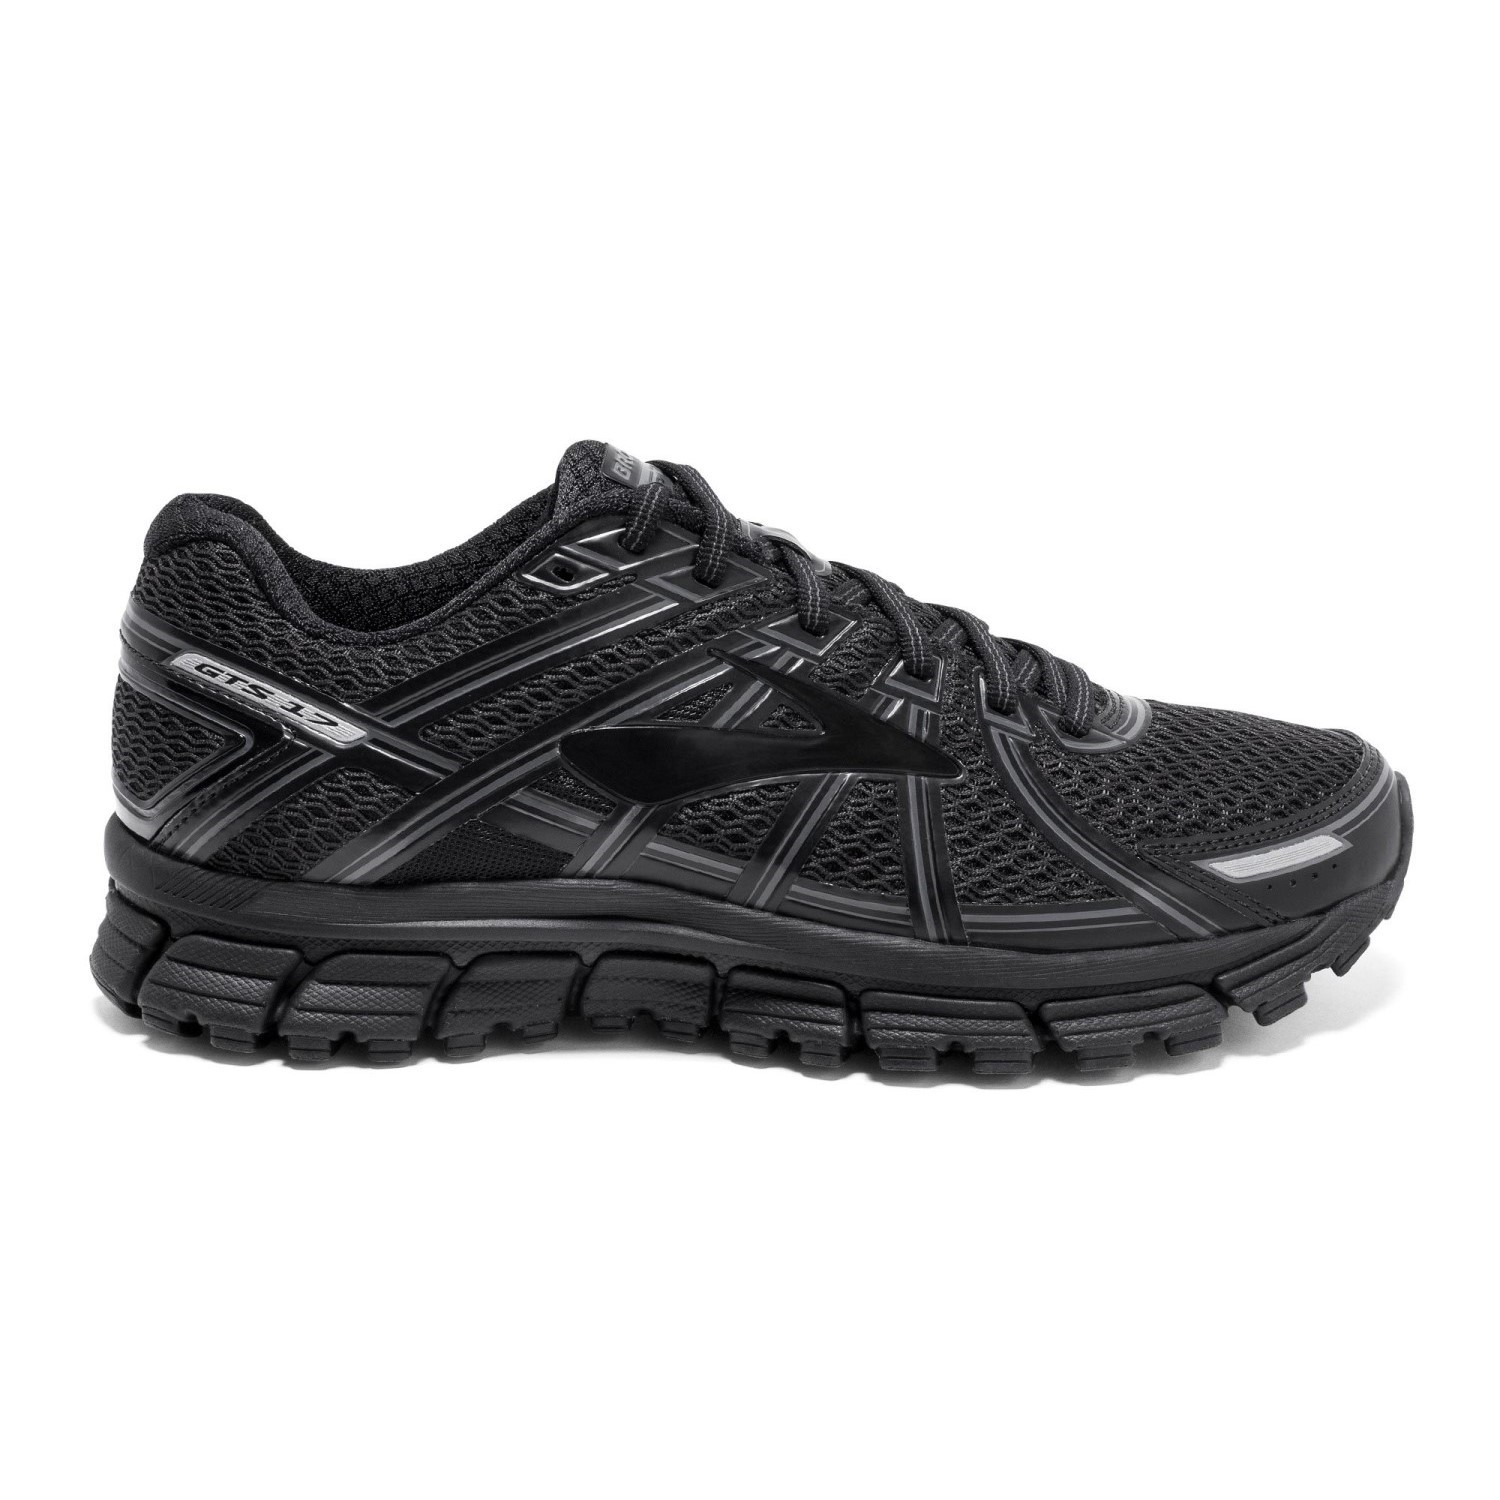 9e4ce0af69 Brooks Adrenaline GTS 17 - Mens Running Shoes - Black/Anthracite ...